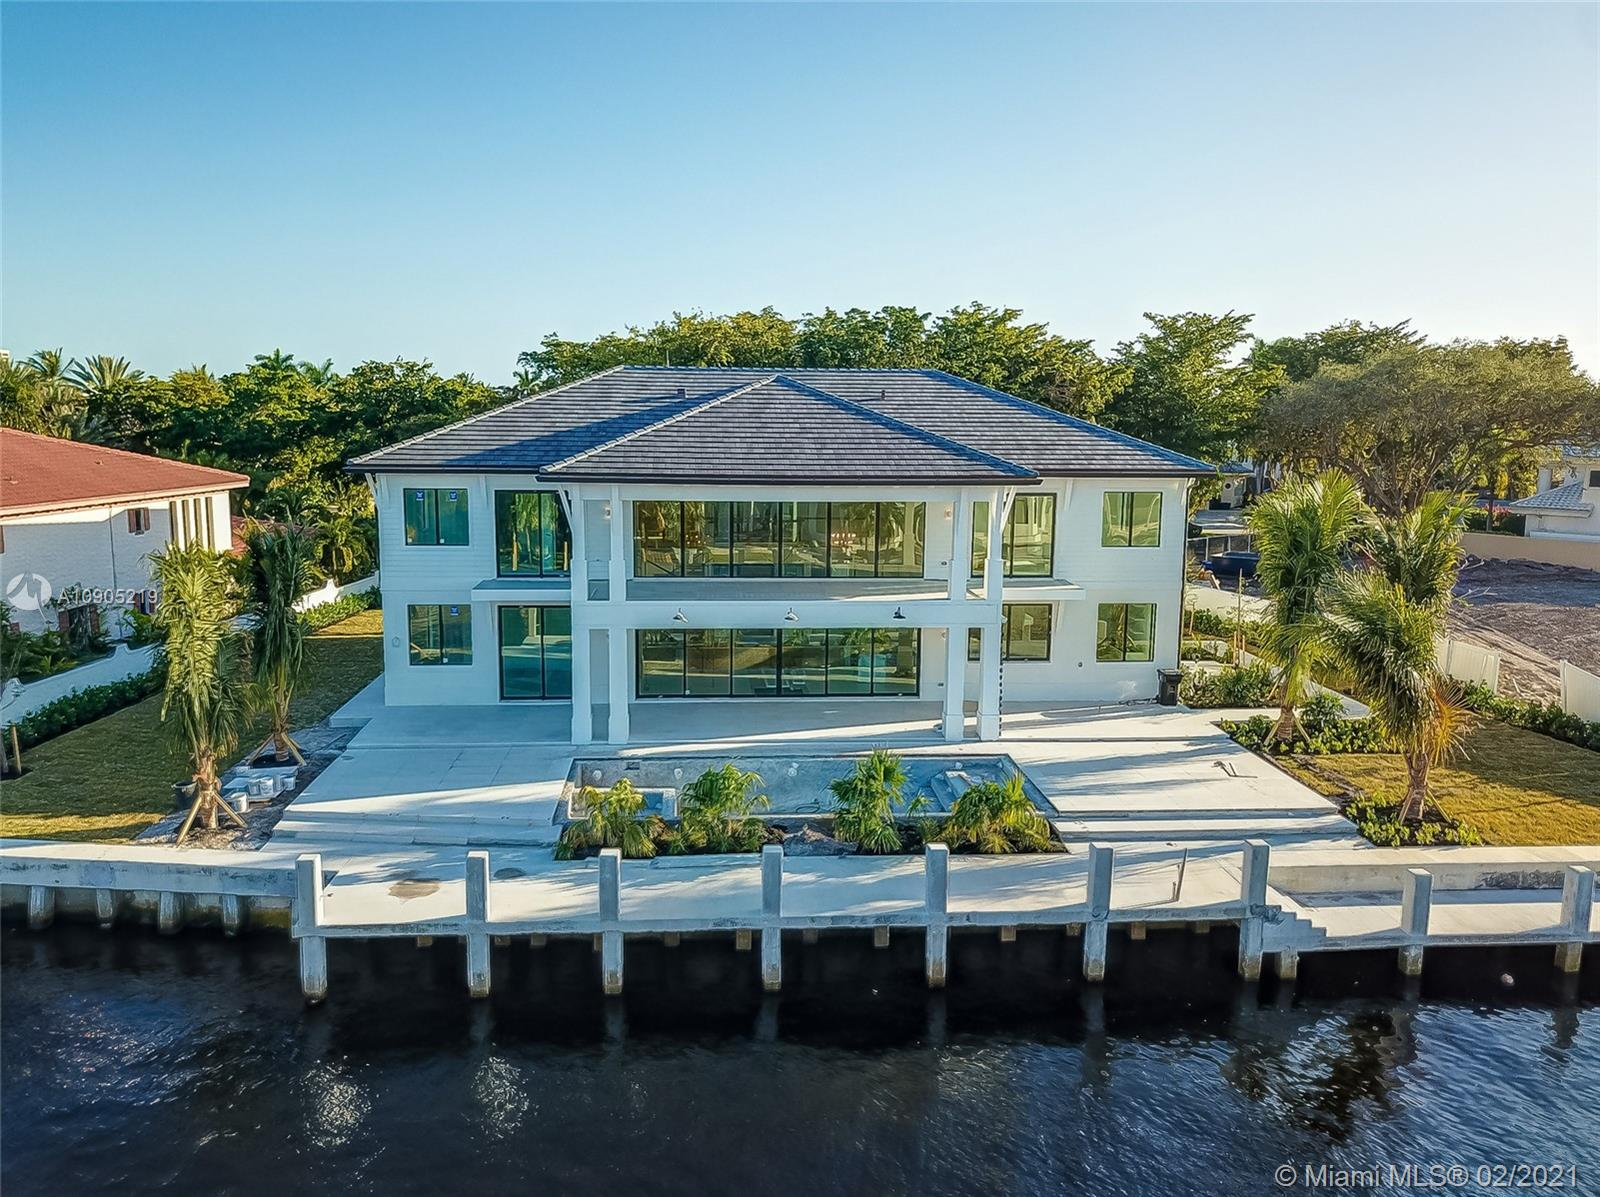 New construction home located within one of the only private, 24 hour guard gated communities in Fort Lauderdale known as Bay Colony. This home sits on an oversized waterfront lot featuring 6 bedrooms and 5.5 bathrooms. Custom chef's kitchen and lavish bathrooms by Mia Cucina. Open floor plan with 22ft ceilings perfect for entertaining and hosting friends and family. Boater's dream with no fixed bridges and easy access to open waterways. One mile away from Pine Crest School. 110' dock, 10' wide, and 151' of Seawall.